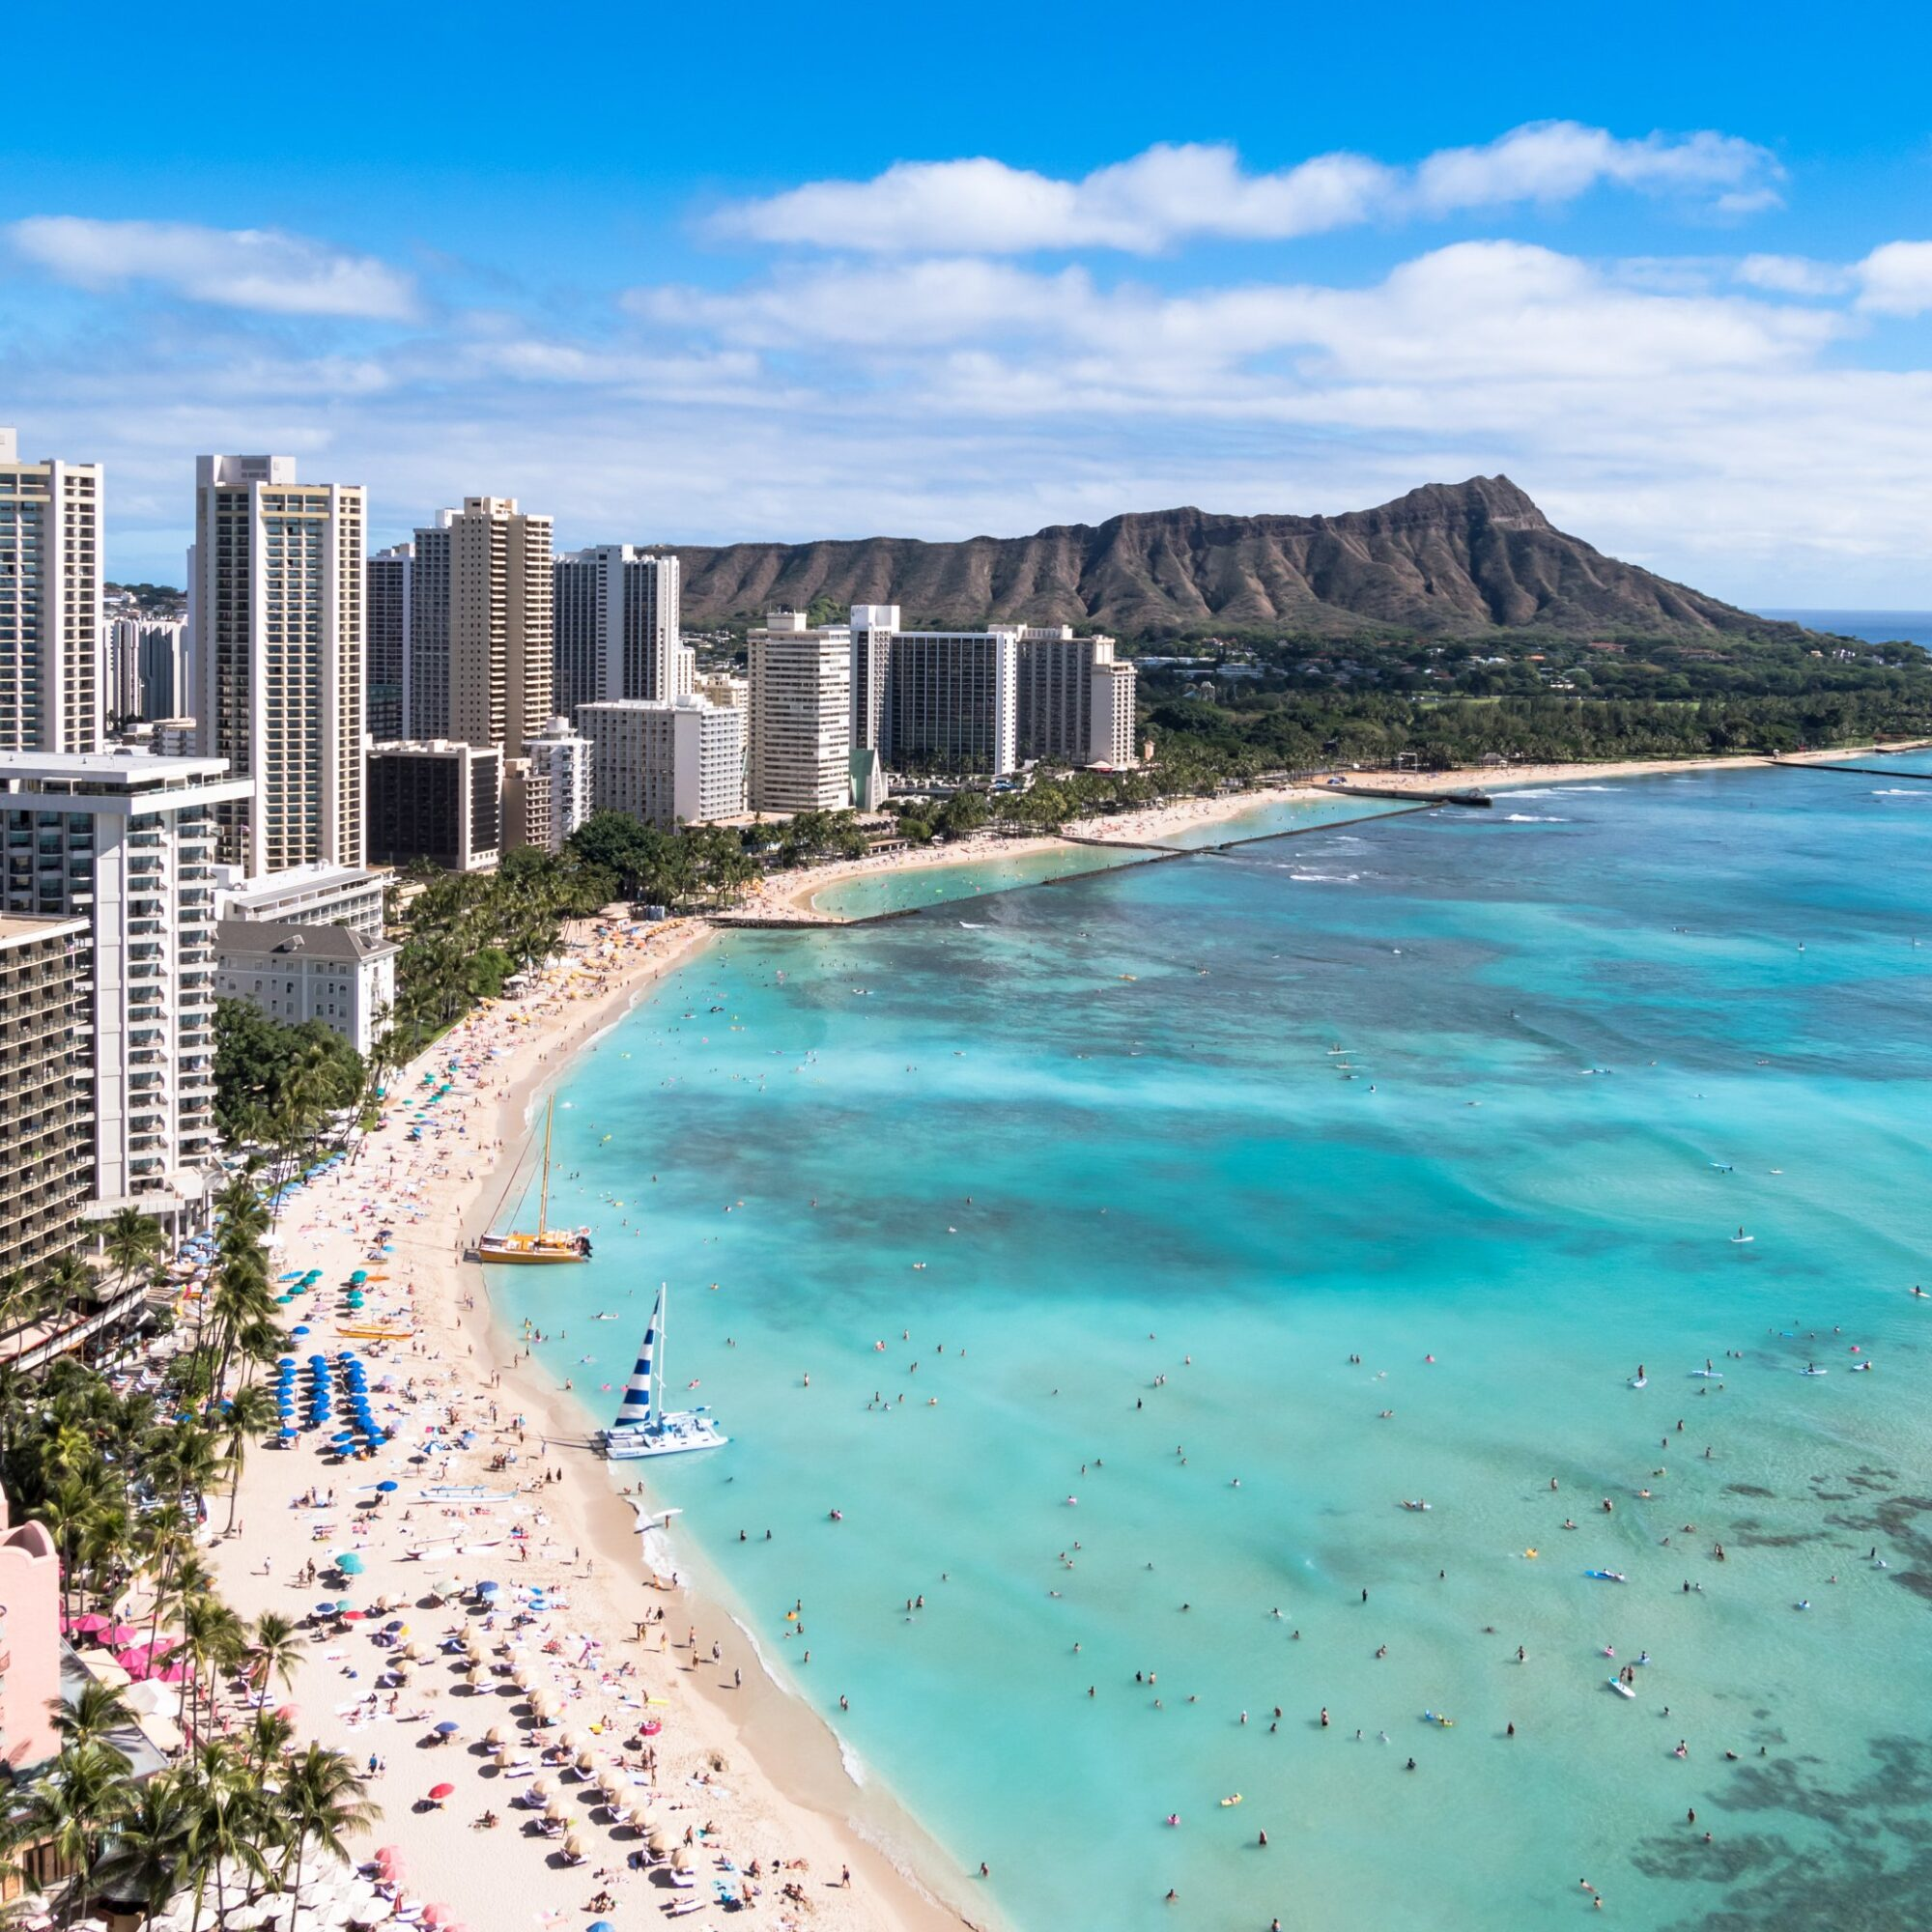 Aerial view of Honolulu and Diamond Head on the island of Oahu.